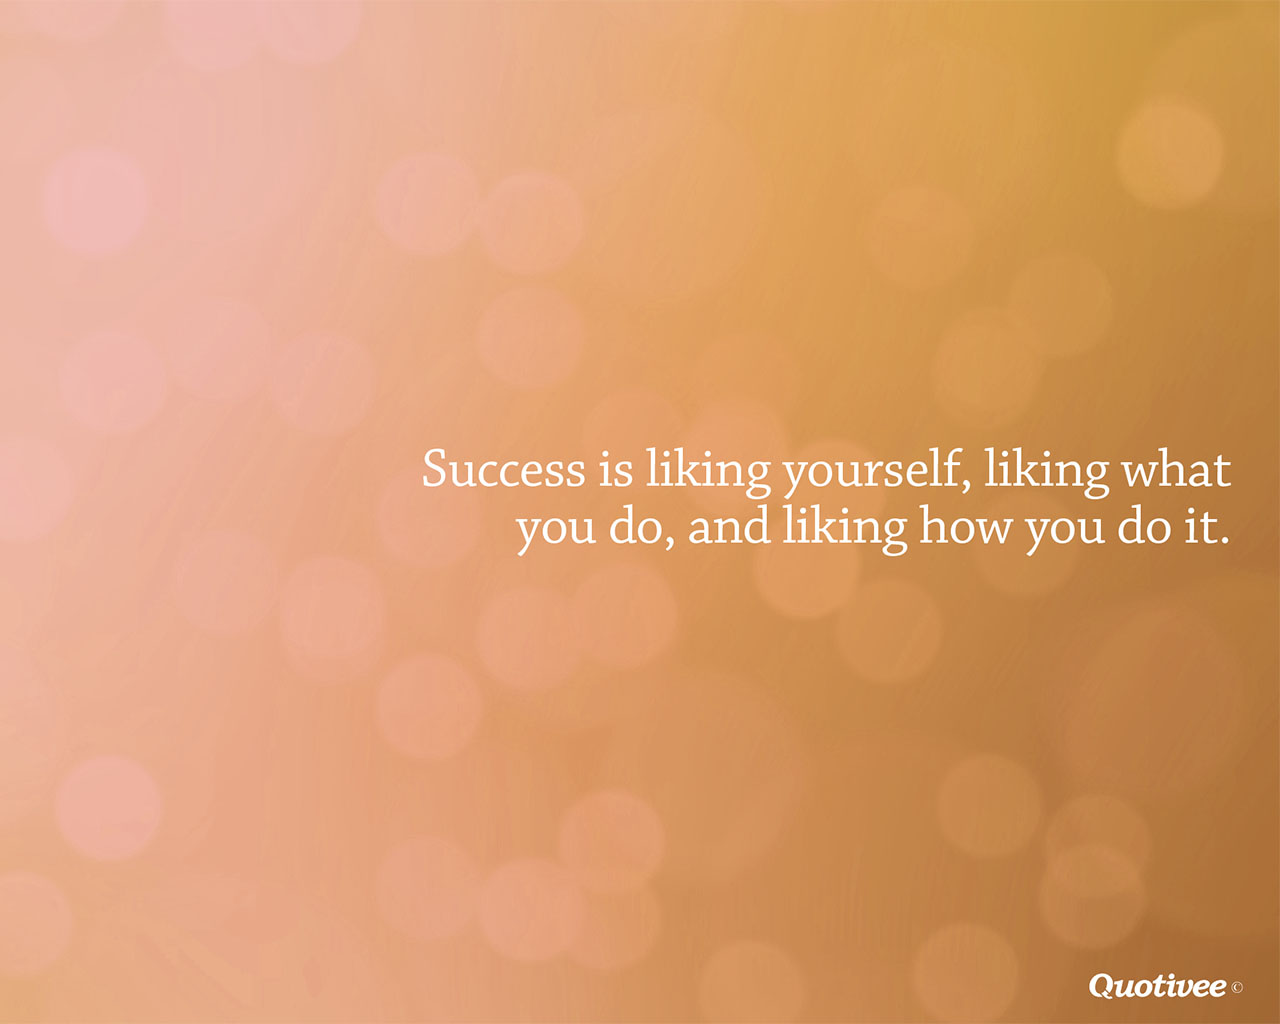 quotivee_1280x1024_0001_Success is liking yourself, liking what you do, and liking how